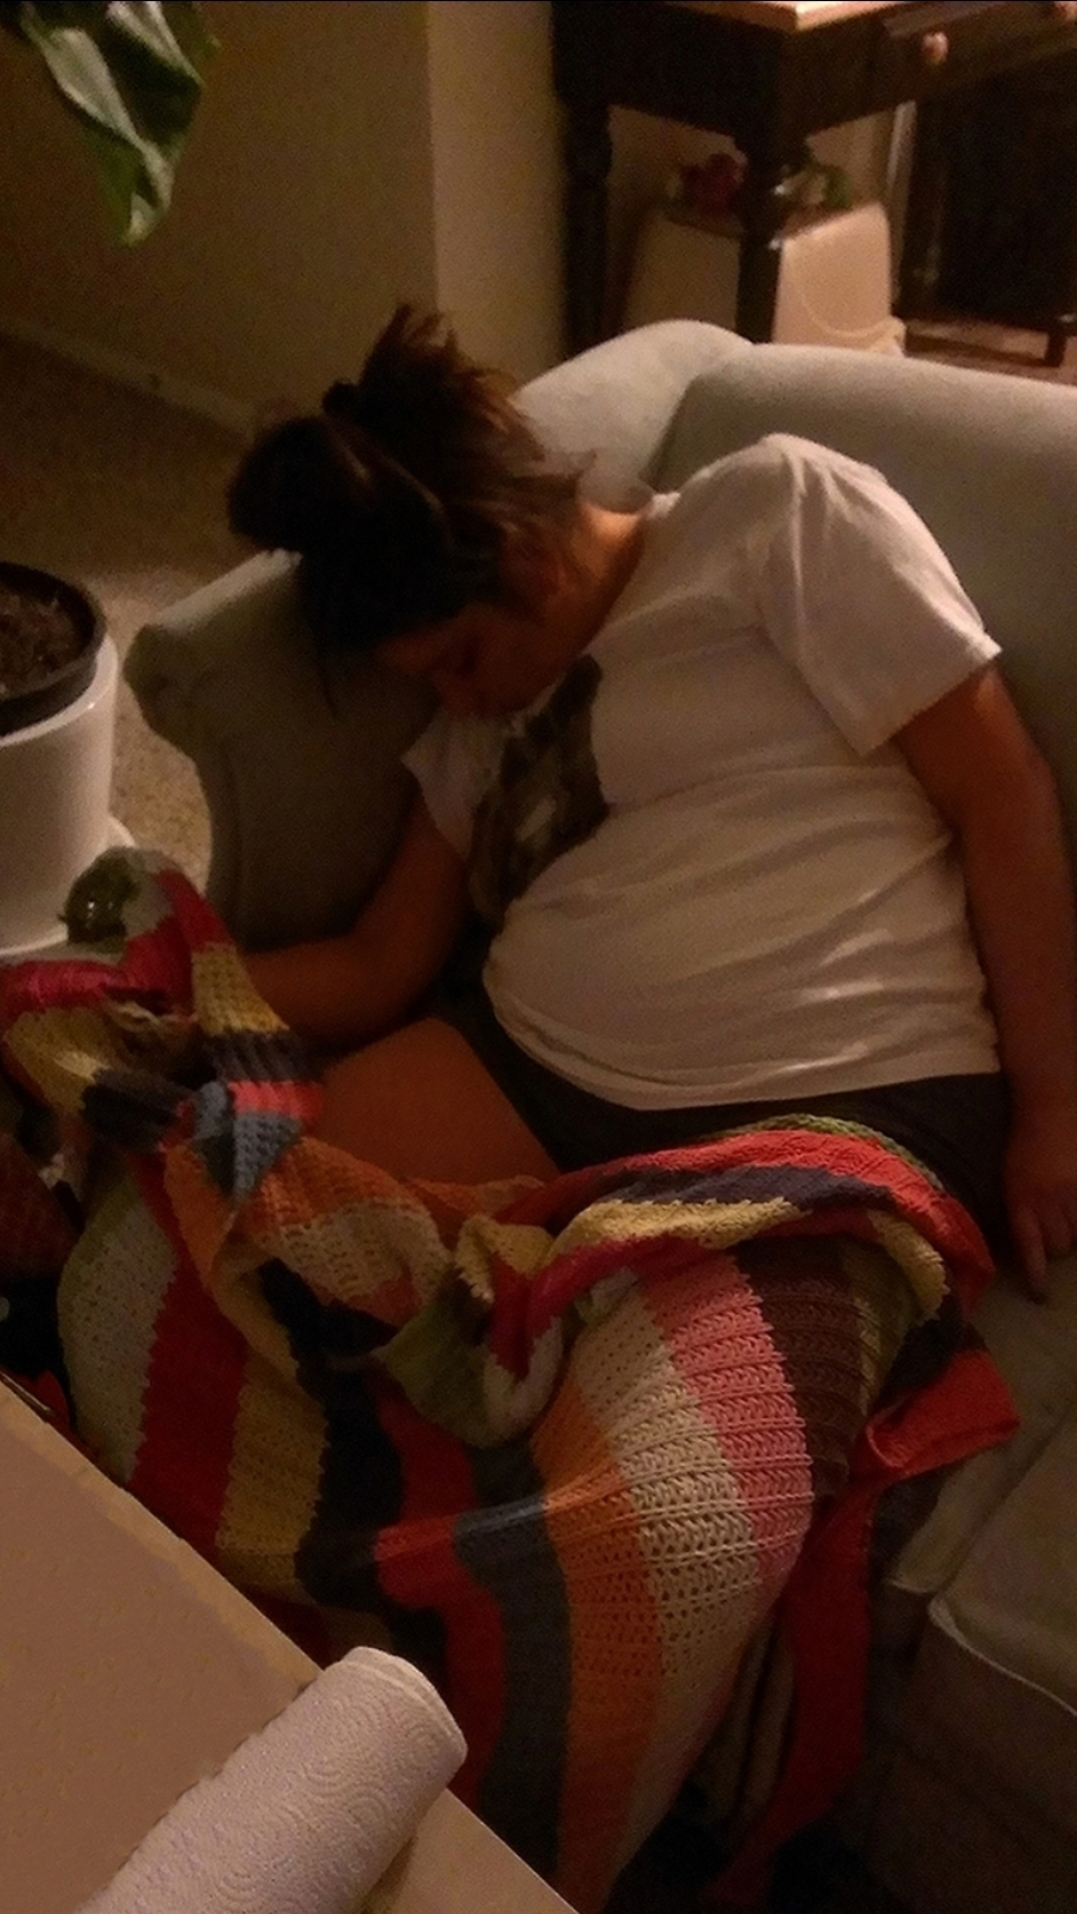 Malia May Johnson asleep on the game room couch picture June 2021